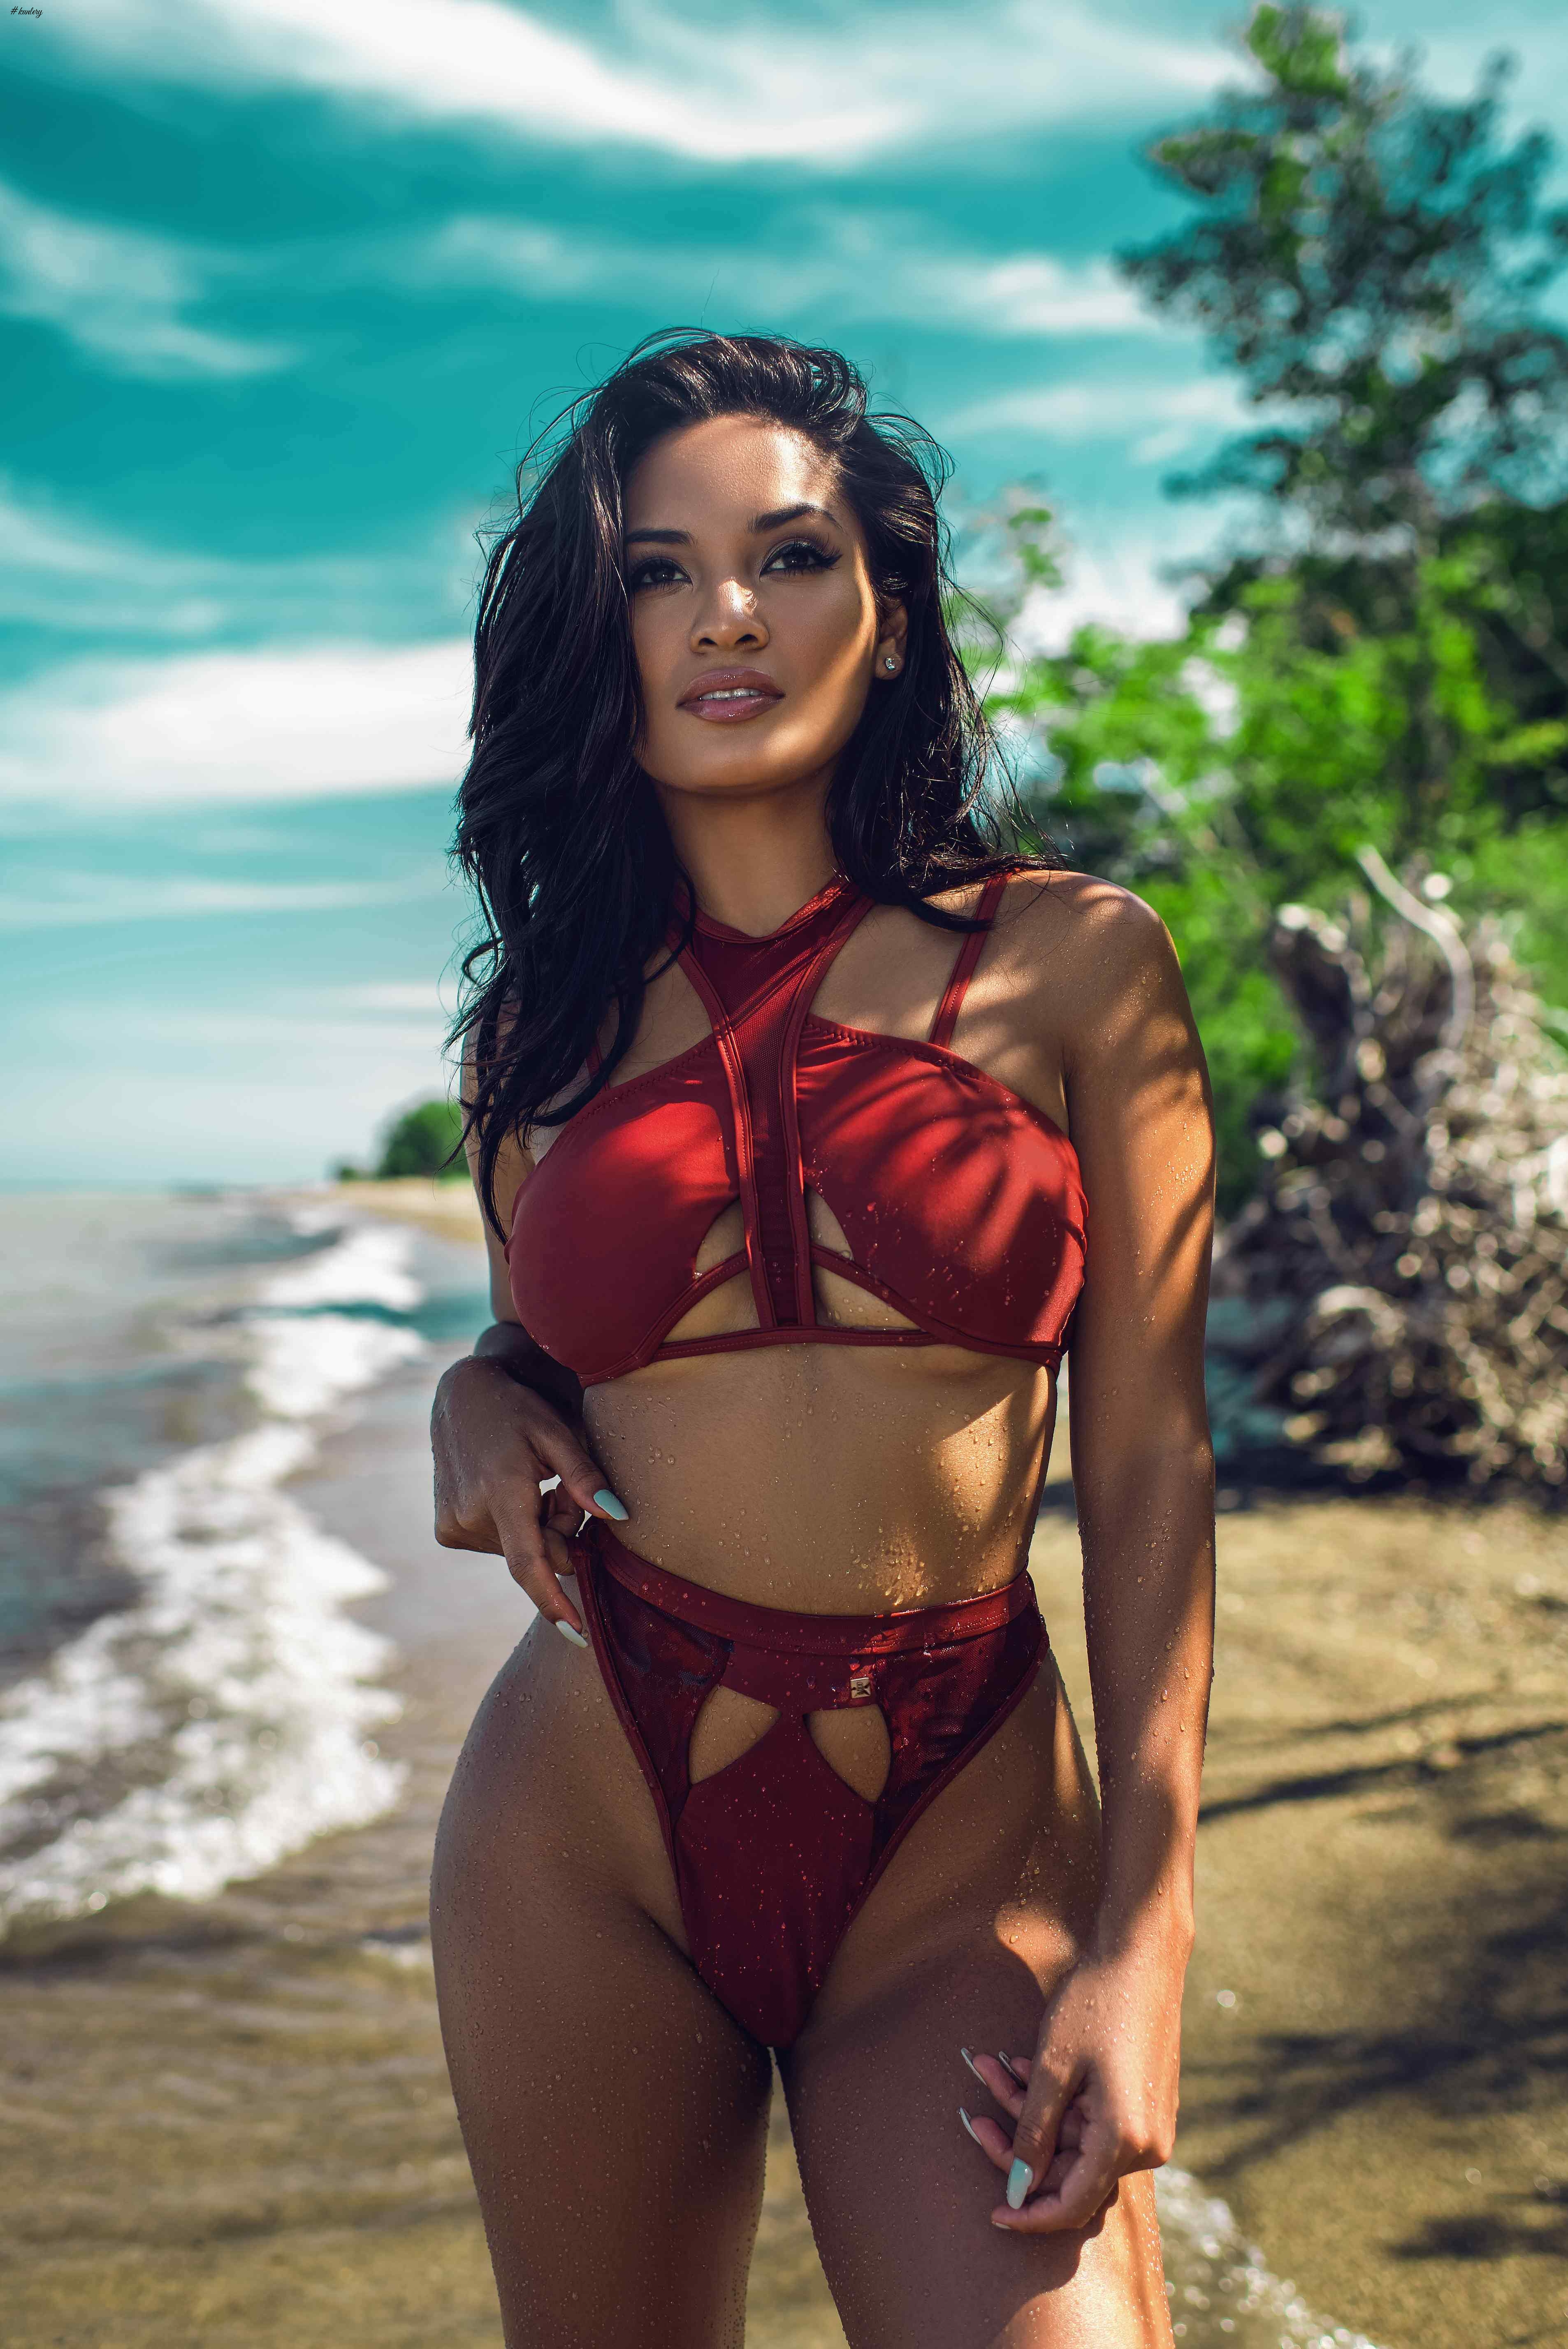 """BFYNE"", VIRGINIA BEACH BASED NIGERIAN LABEL DEBUTS ITS 2016 SWIMWEAR COLLECTION"